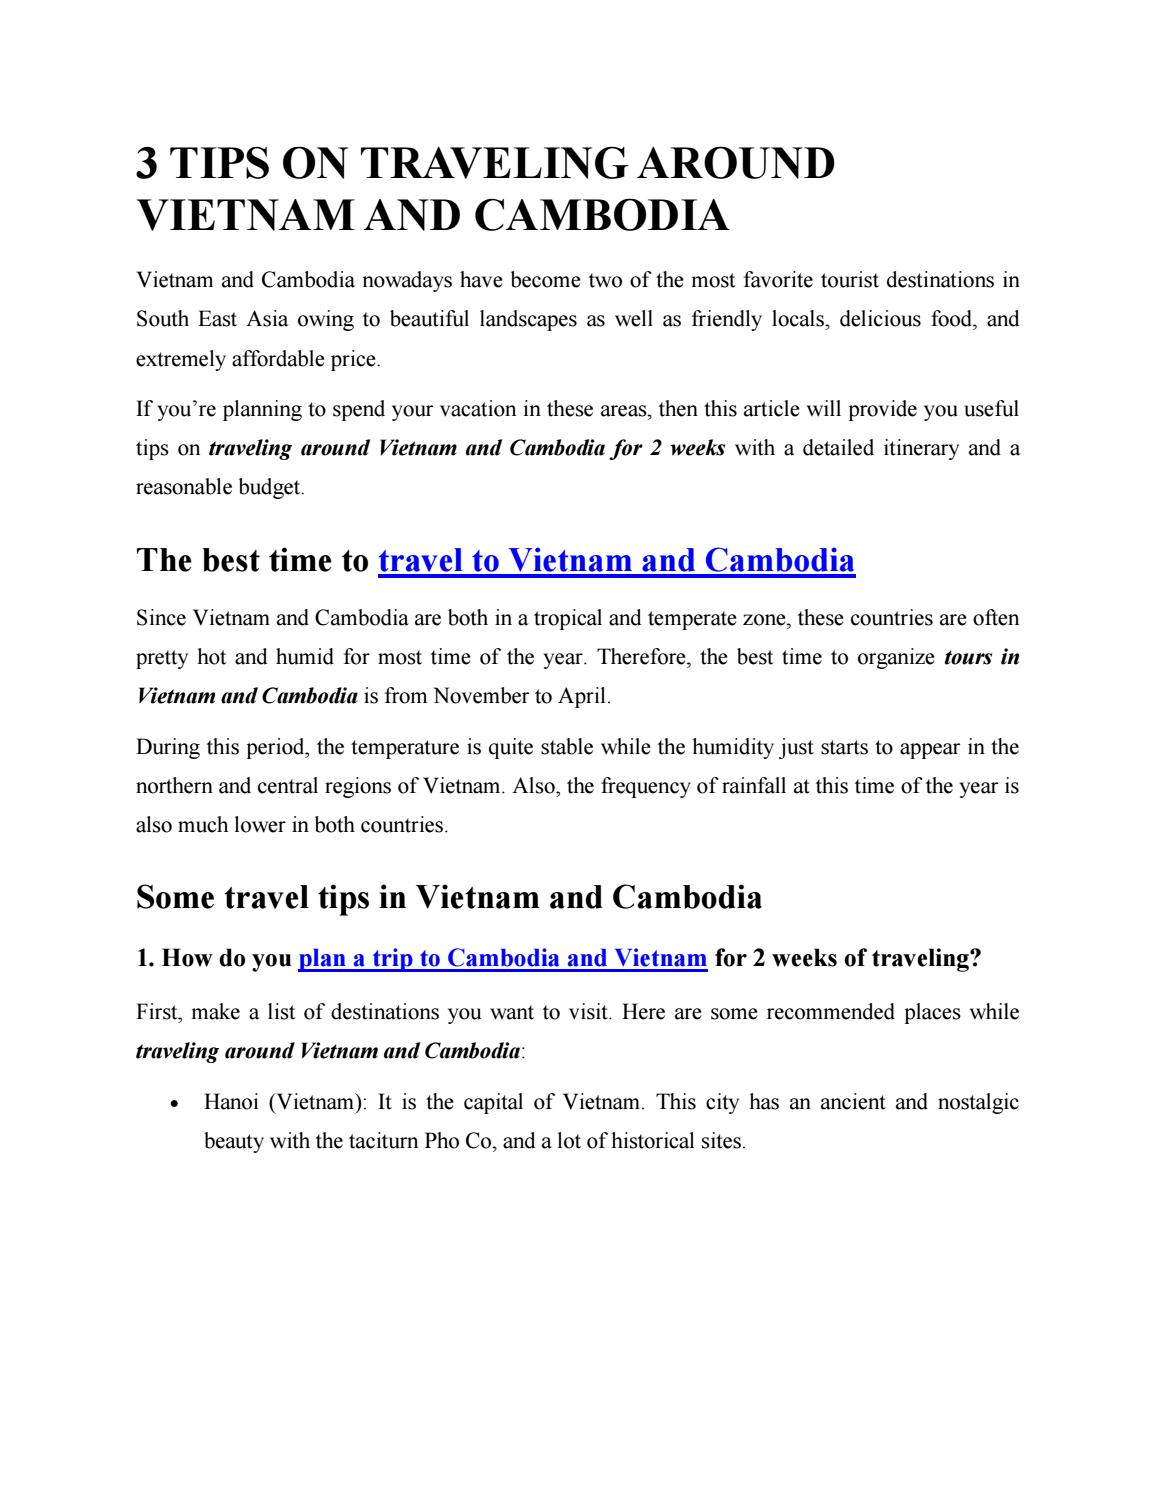 3 tips on traveling around Vietnam and Cambodia by trip-viet